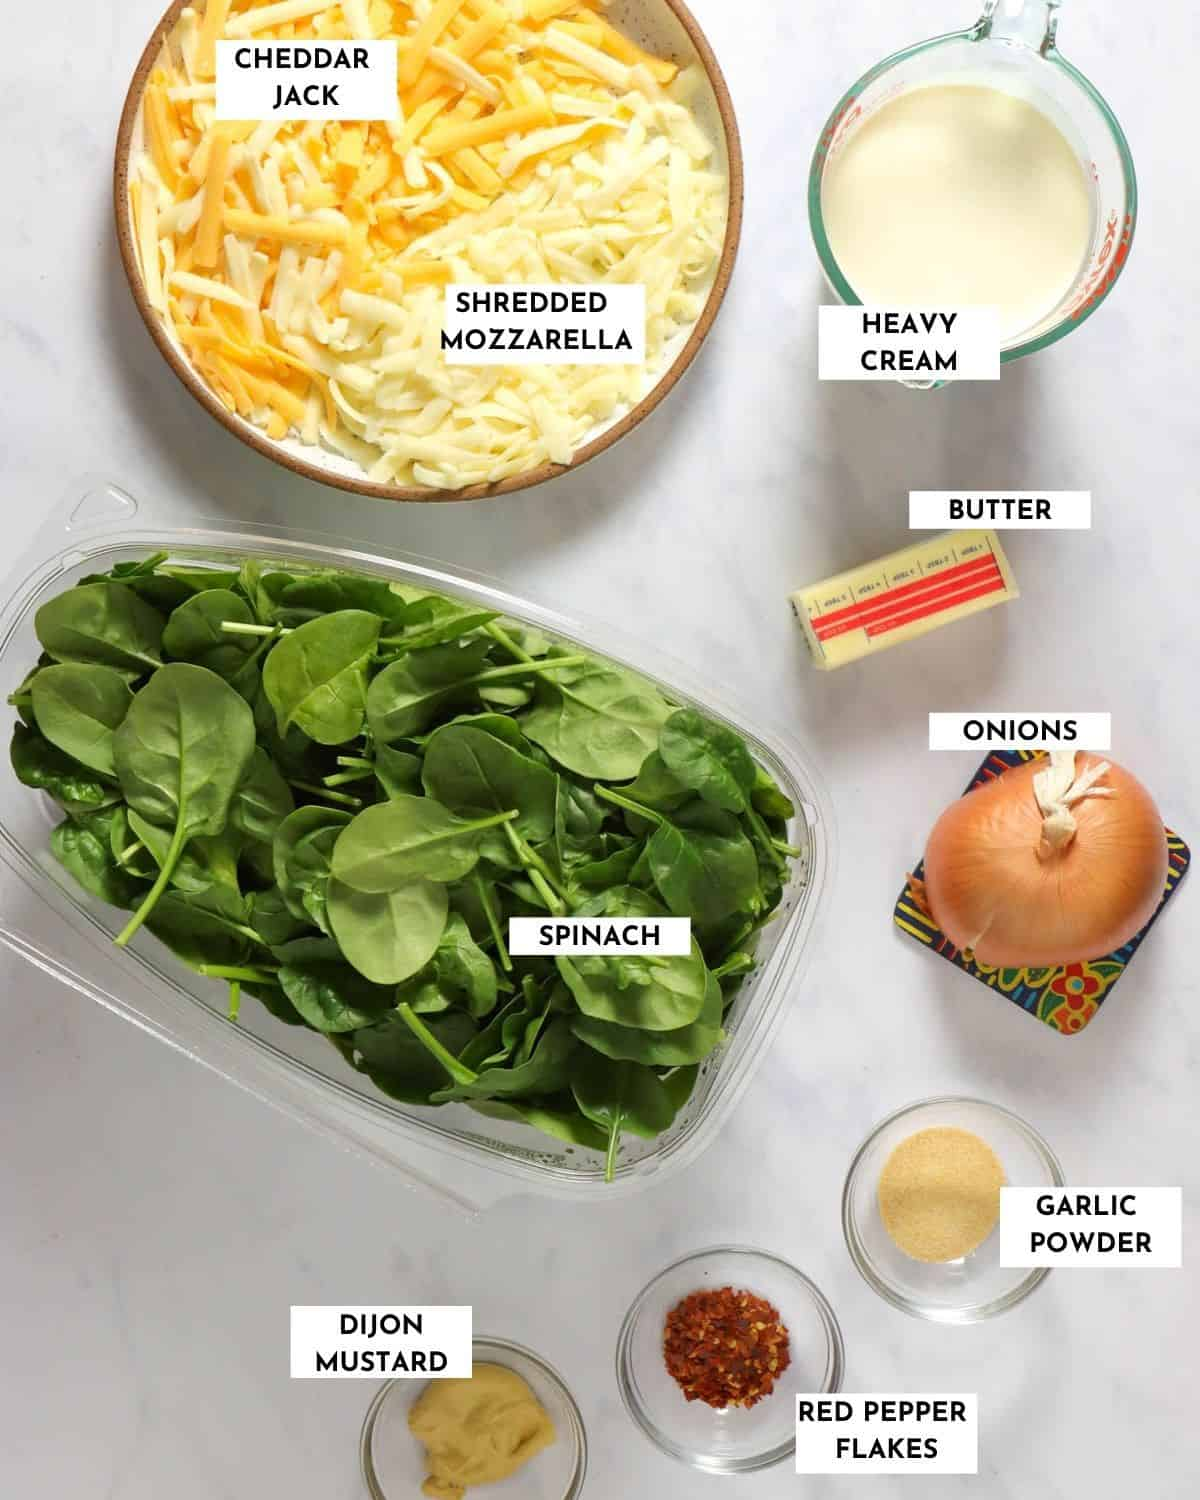 Labeled ingredient list for creamed spinach - check recipe card for details!